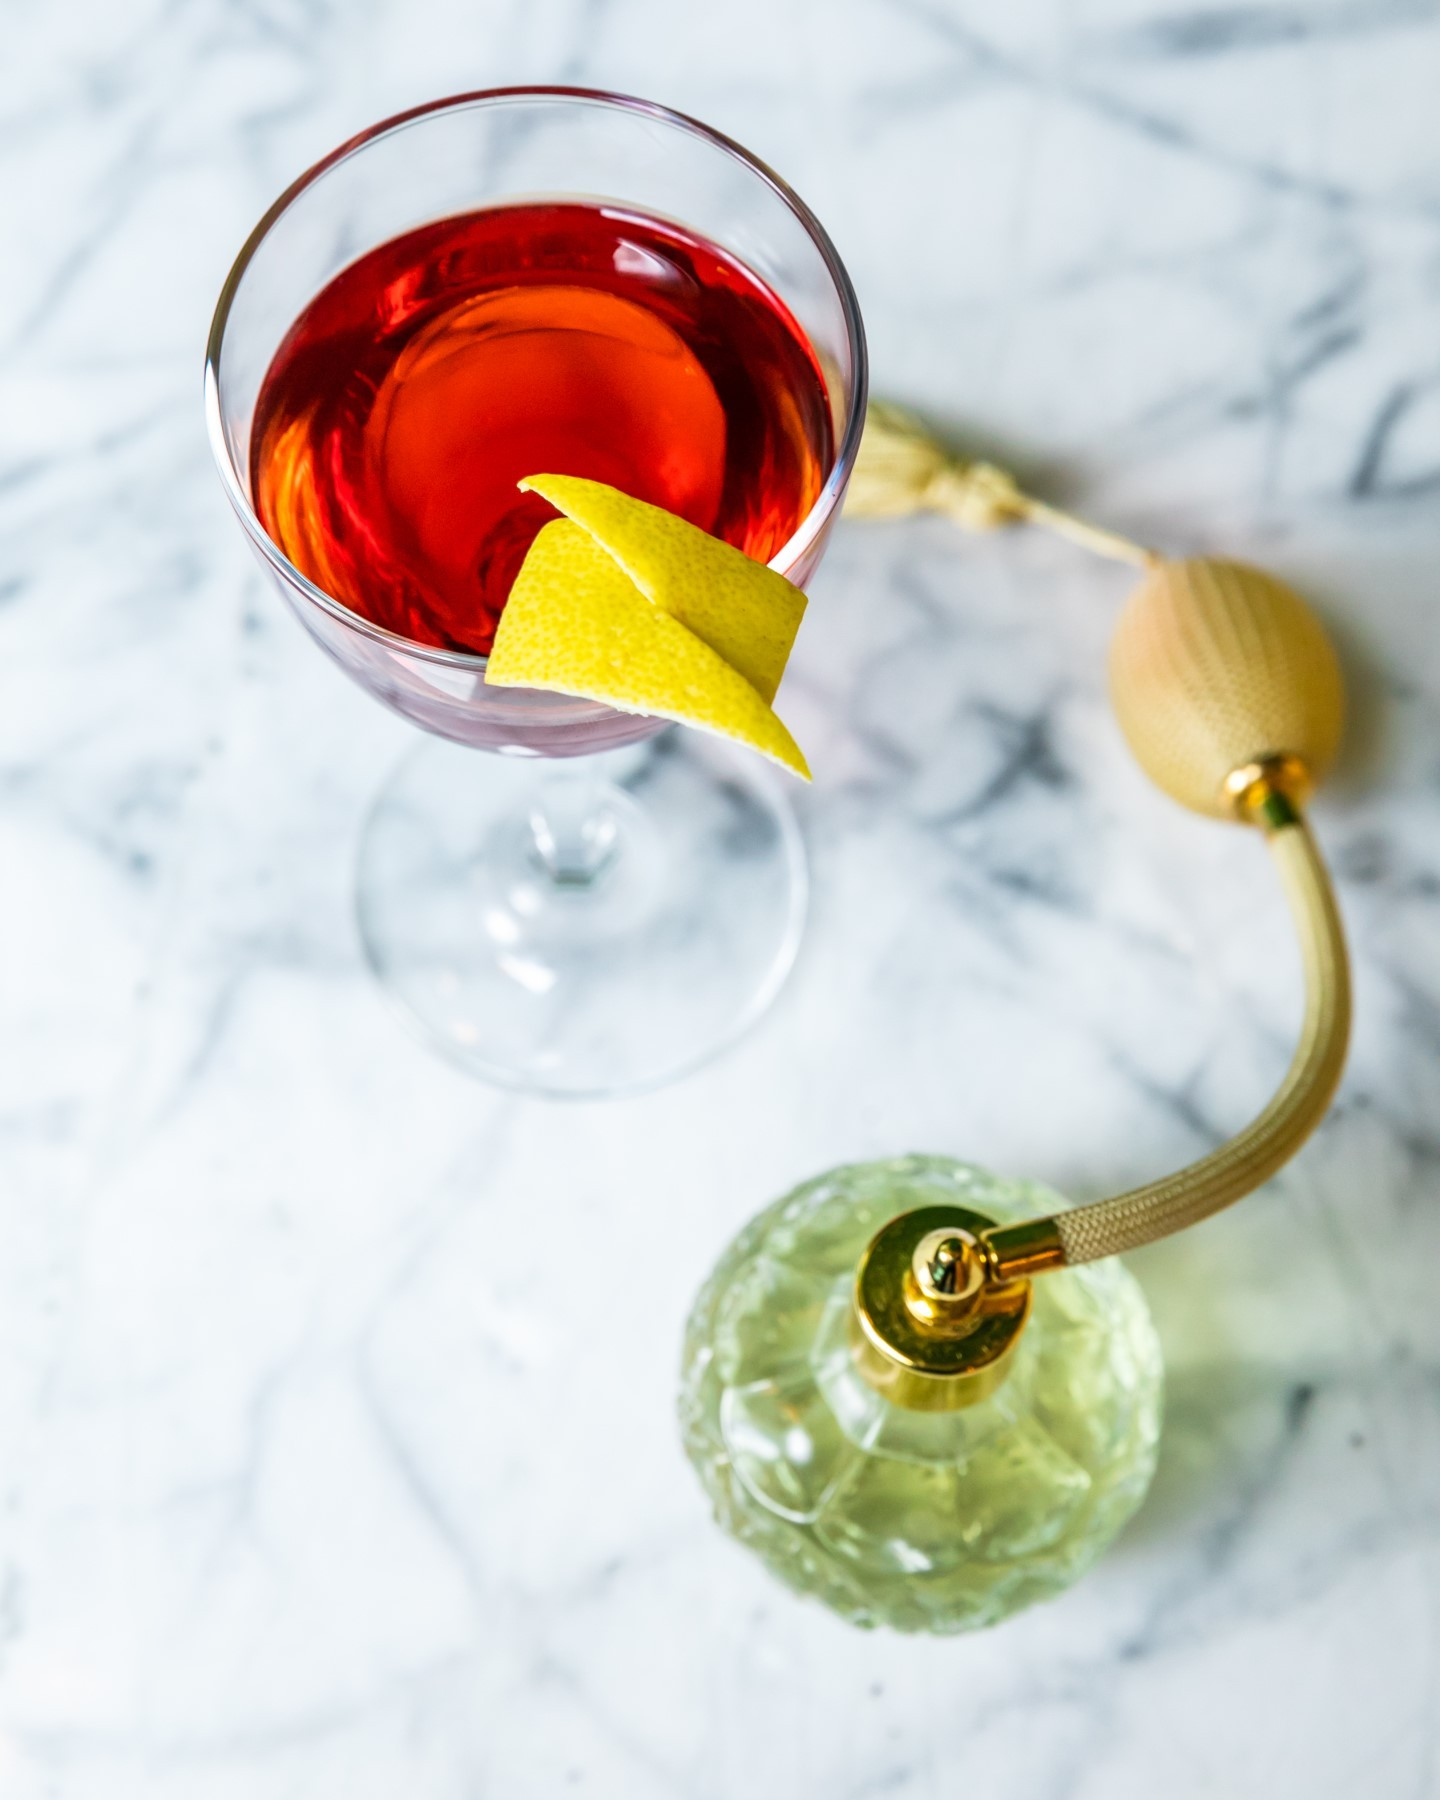 The Nola Sazerac is our strongest tipple. Have you braved one yet?